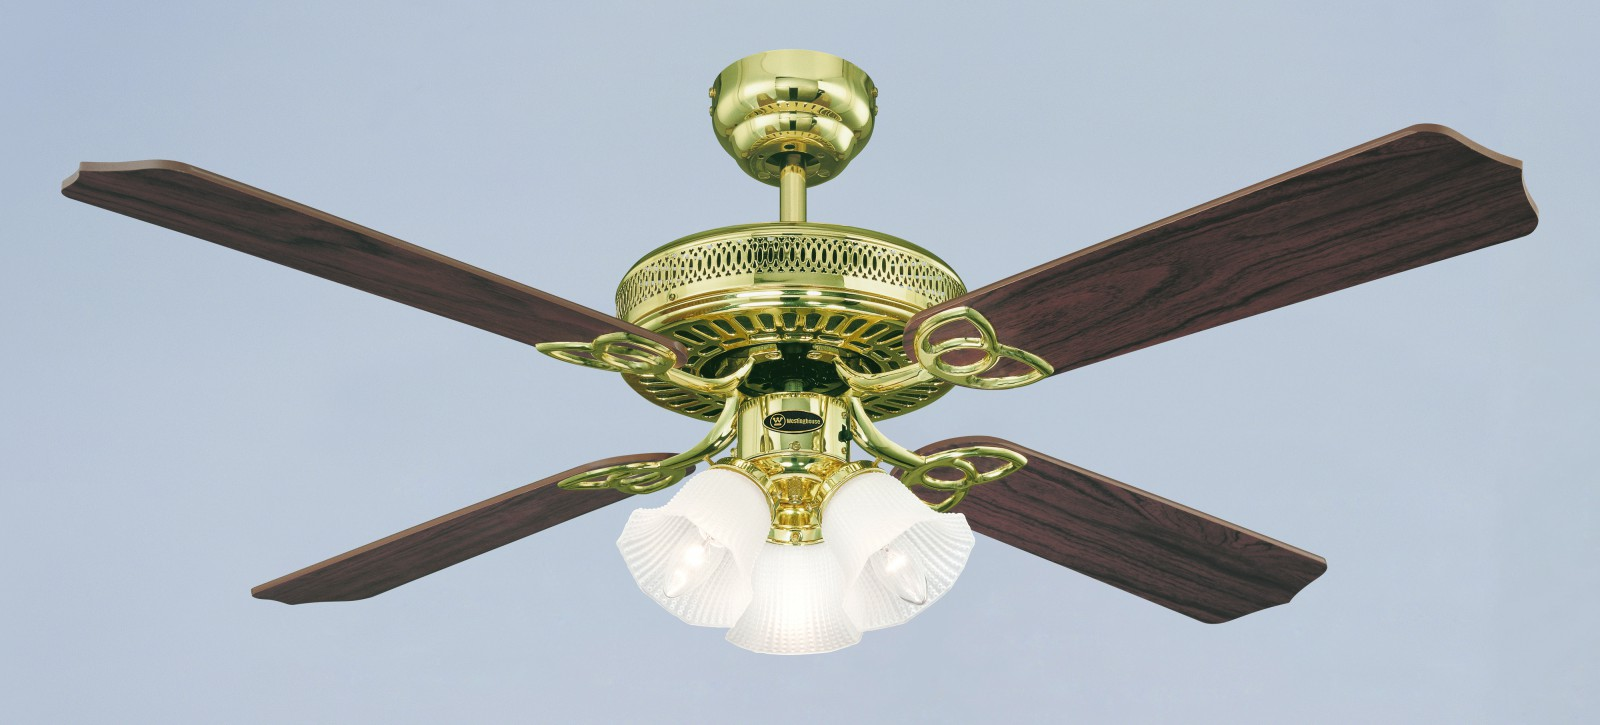 Westinghouse ceiling fan monarch trio polished brass 132 cm 52 westinghouse ceiling fan monarch trio polished brass 132 cm 52quot with lights bild aloadofball Images